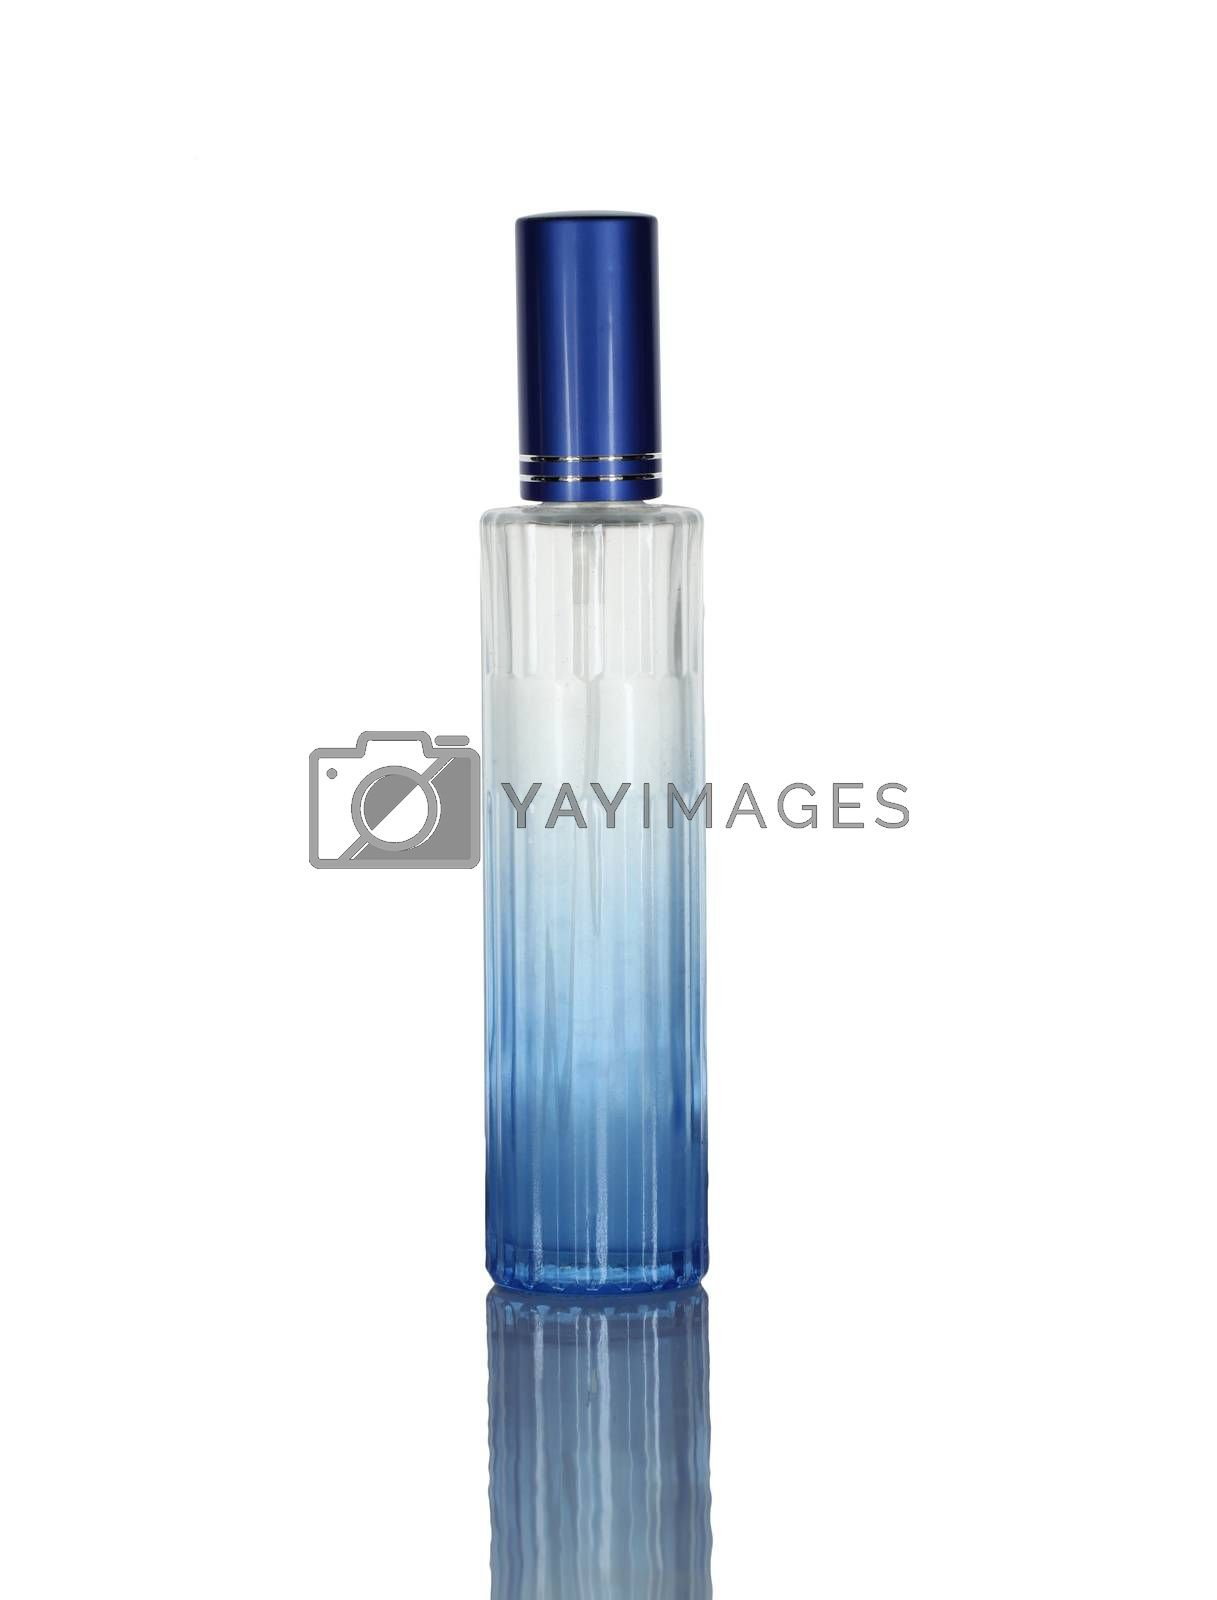 New perfume bottles that are not in use. by PiyaPhoto